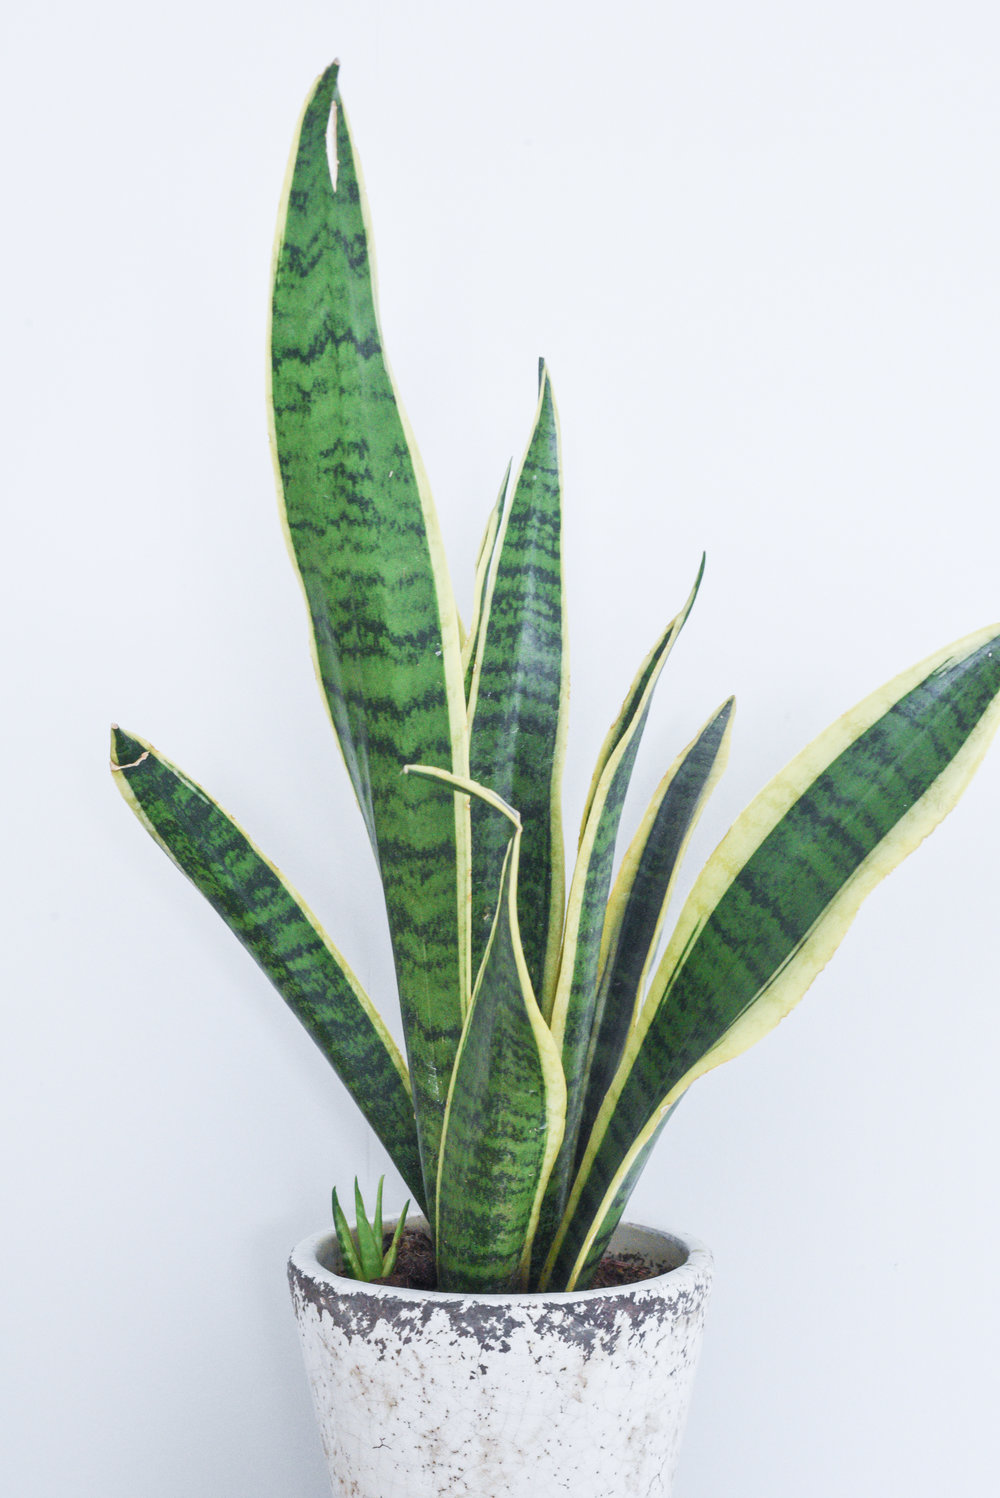 Mother-in-laws tongue - {Sansevieria trifasciata